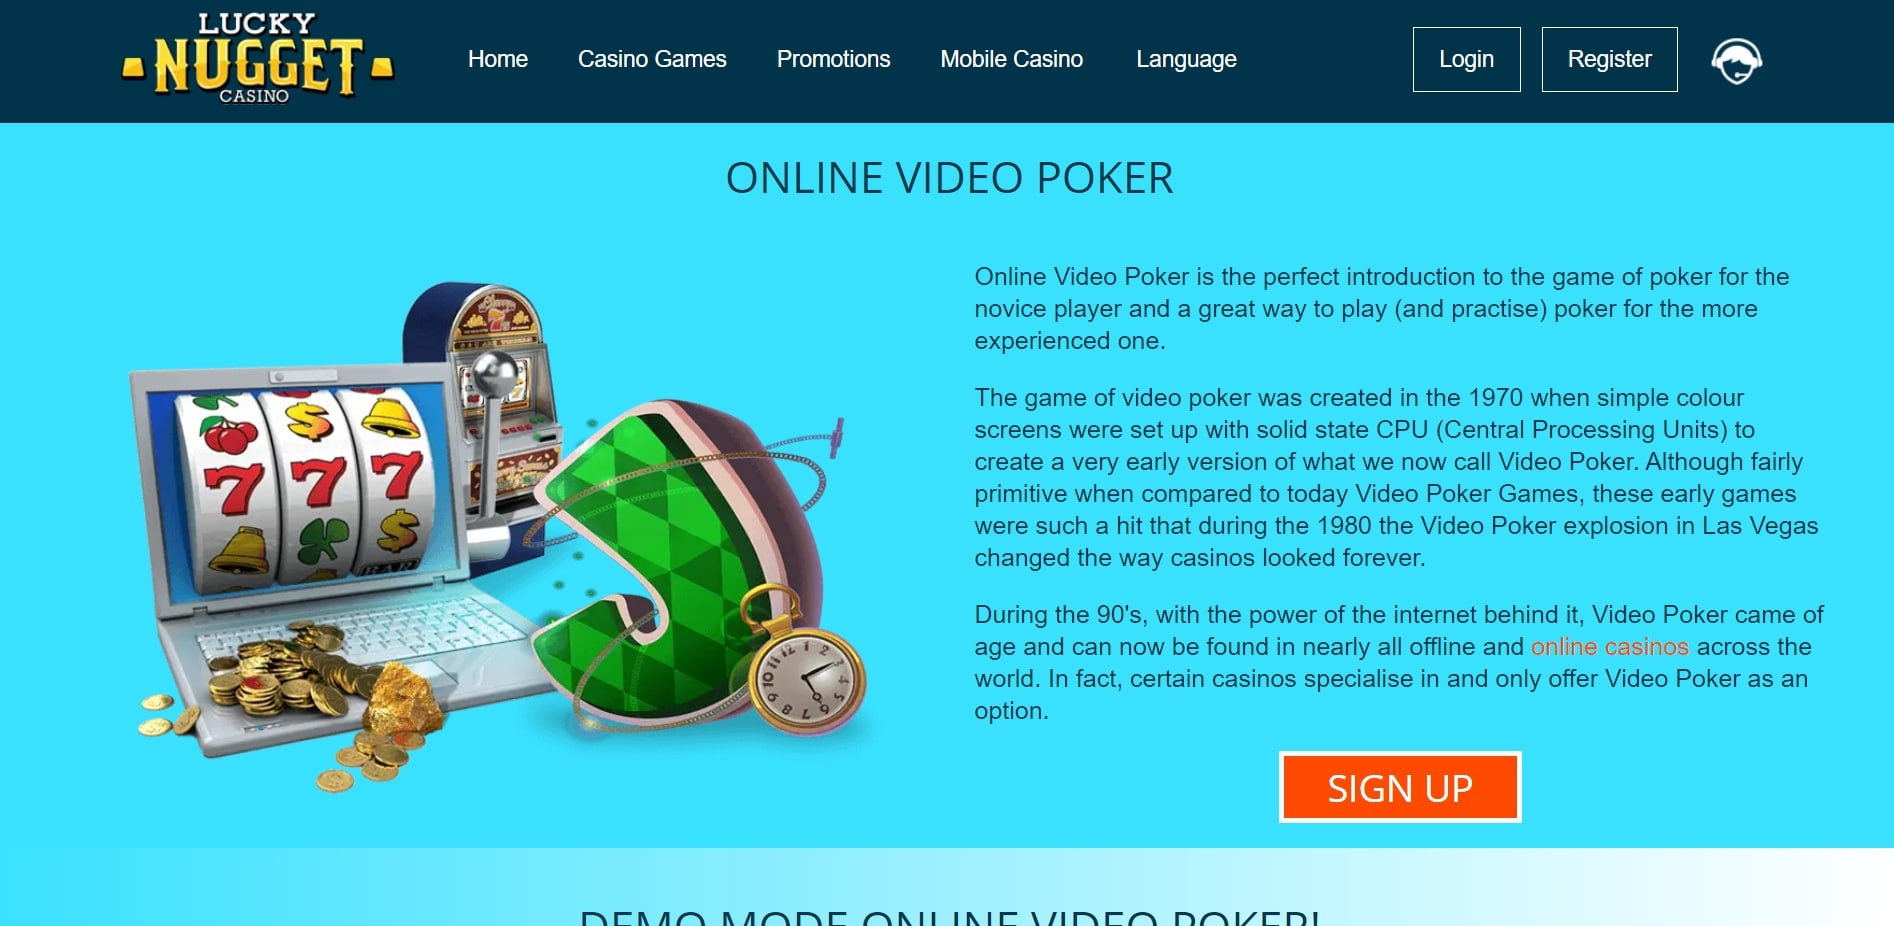 Lucky Nugget Casino US Live Dealer Games